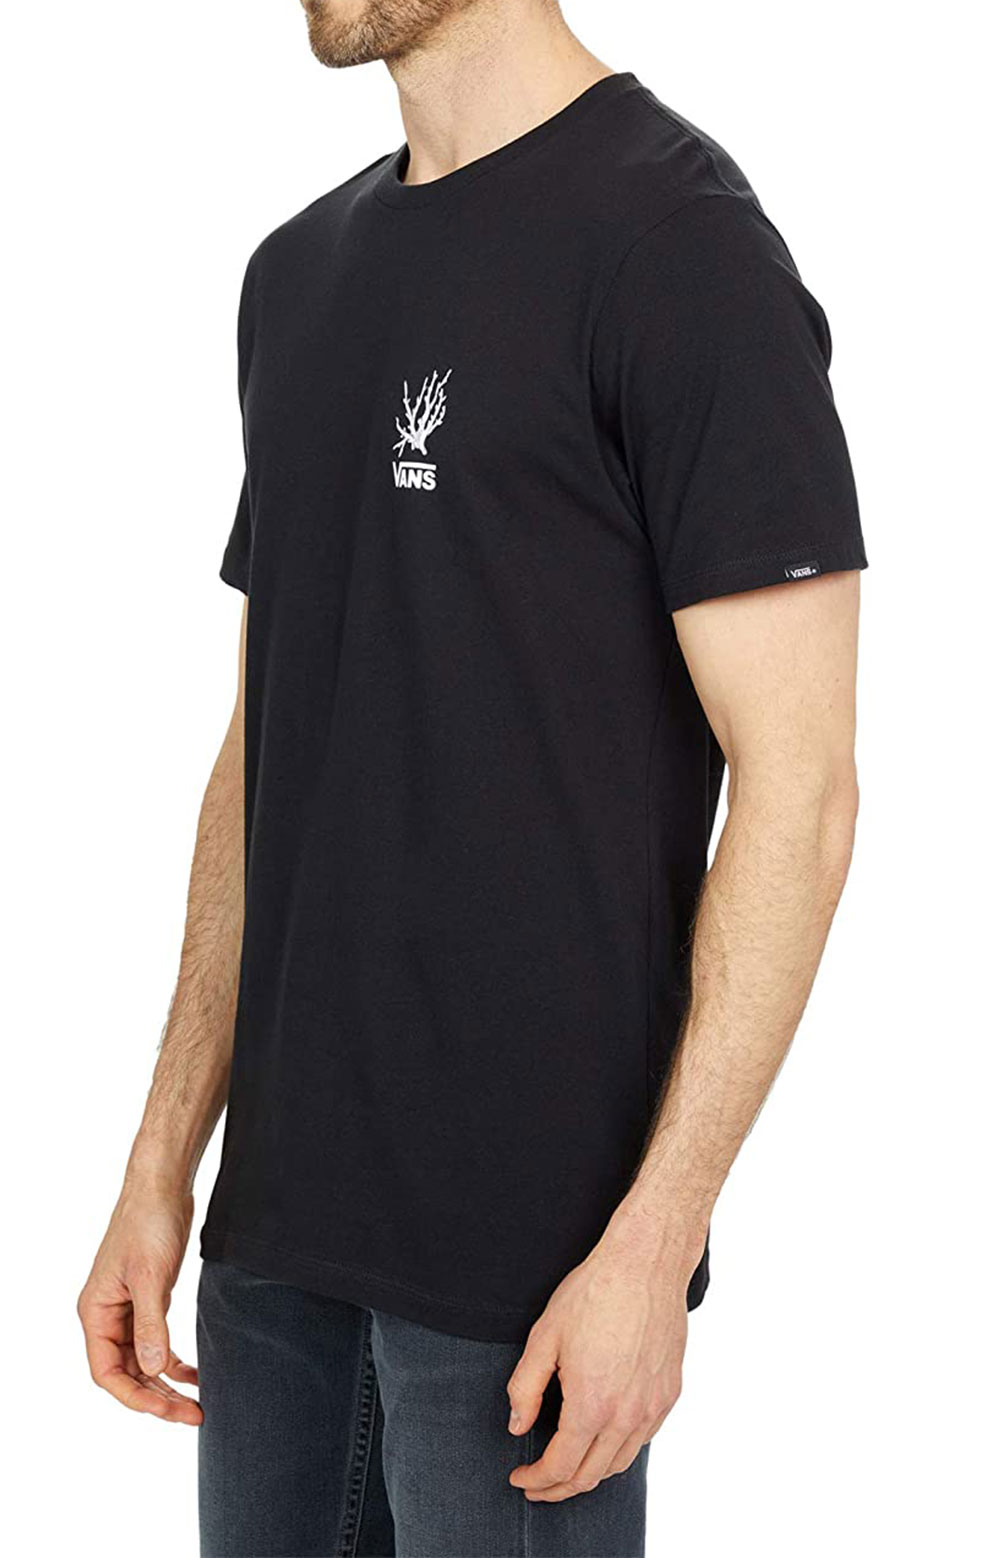 Reality Coral T-Shirt - Black  2